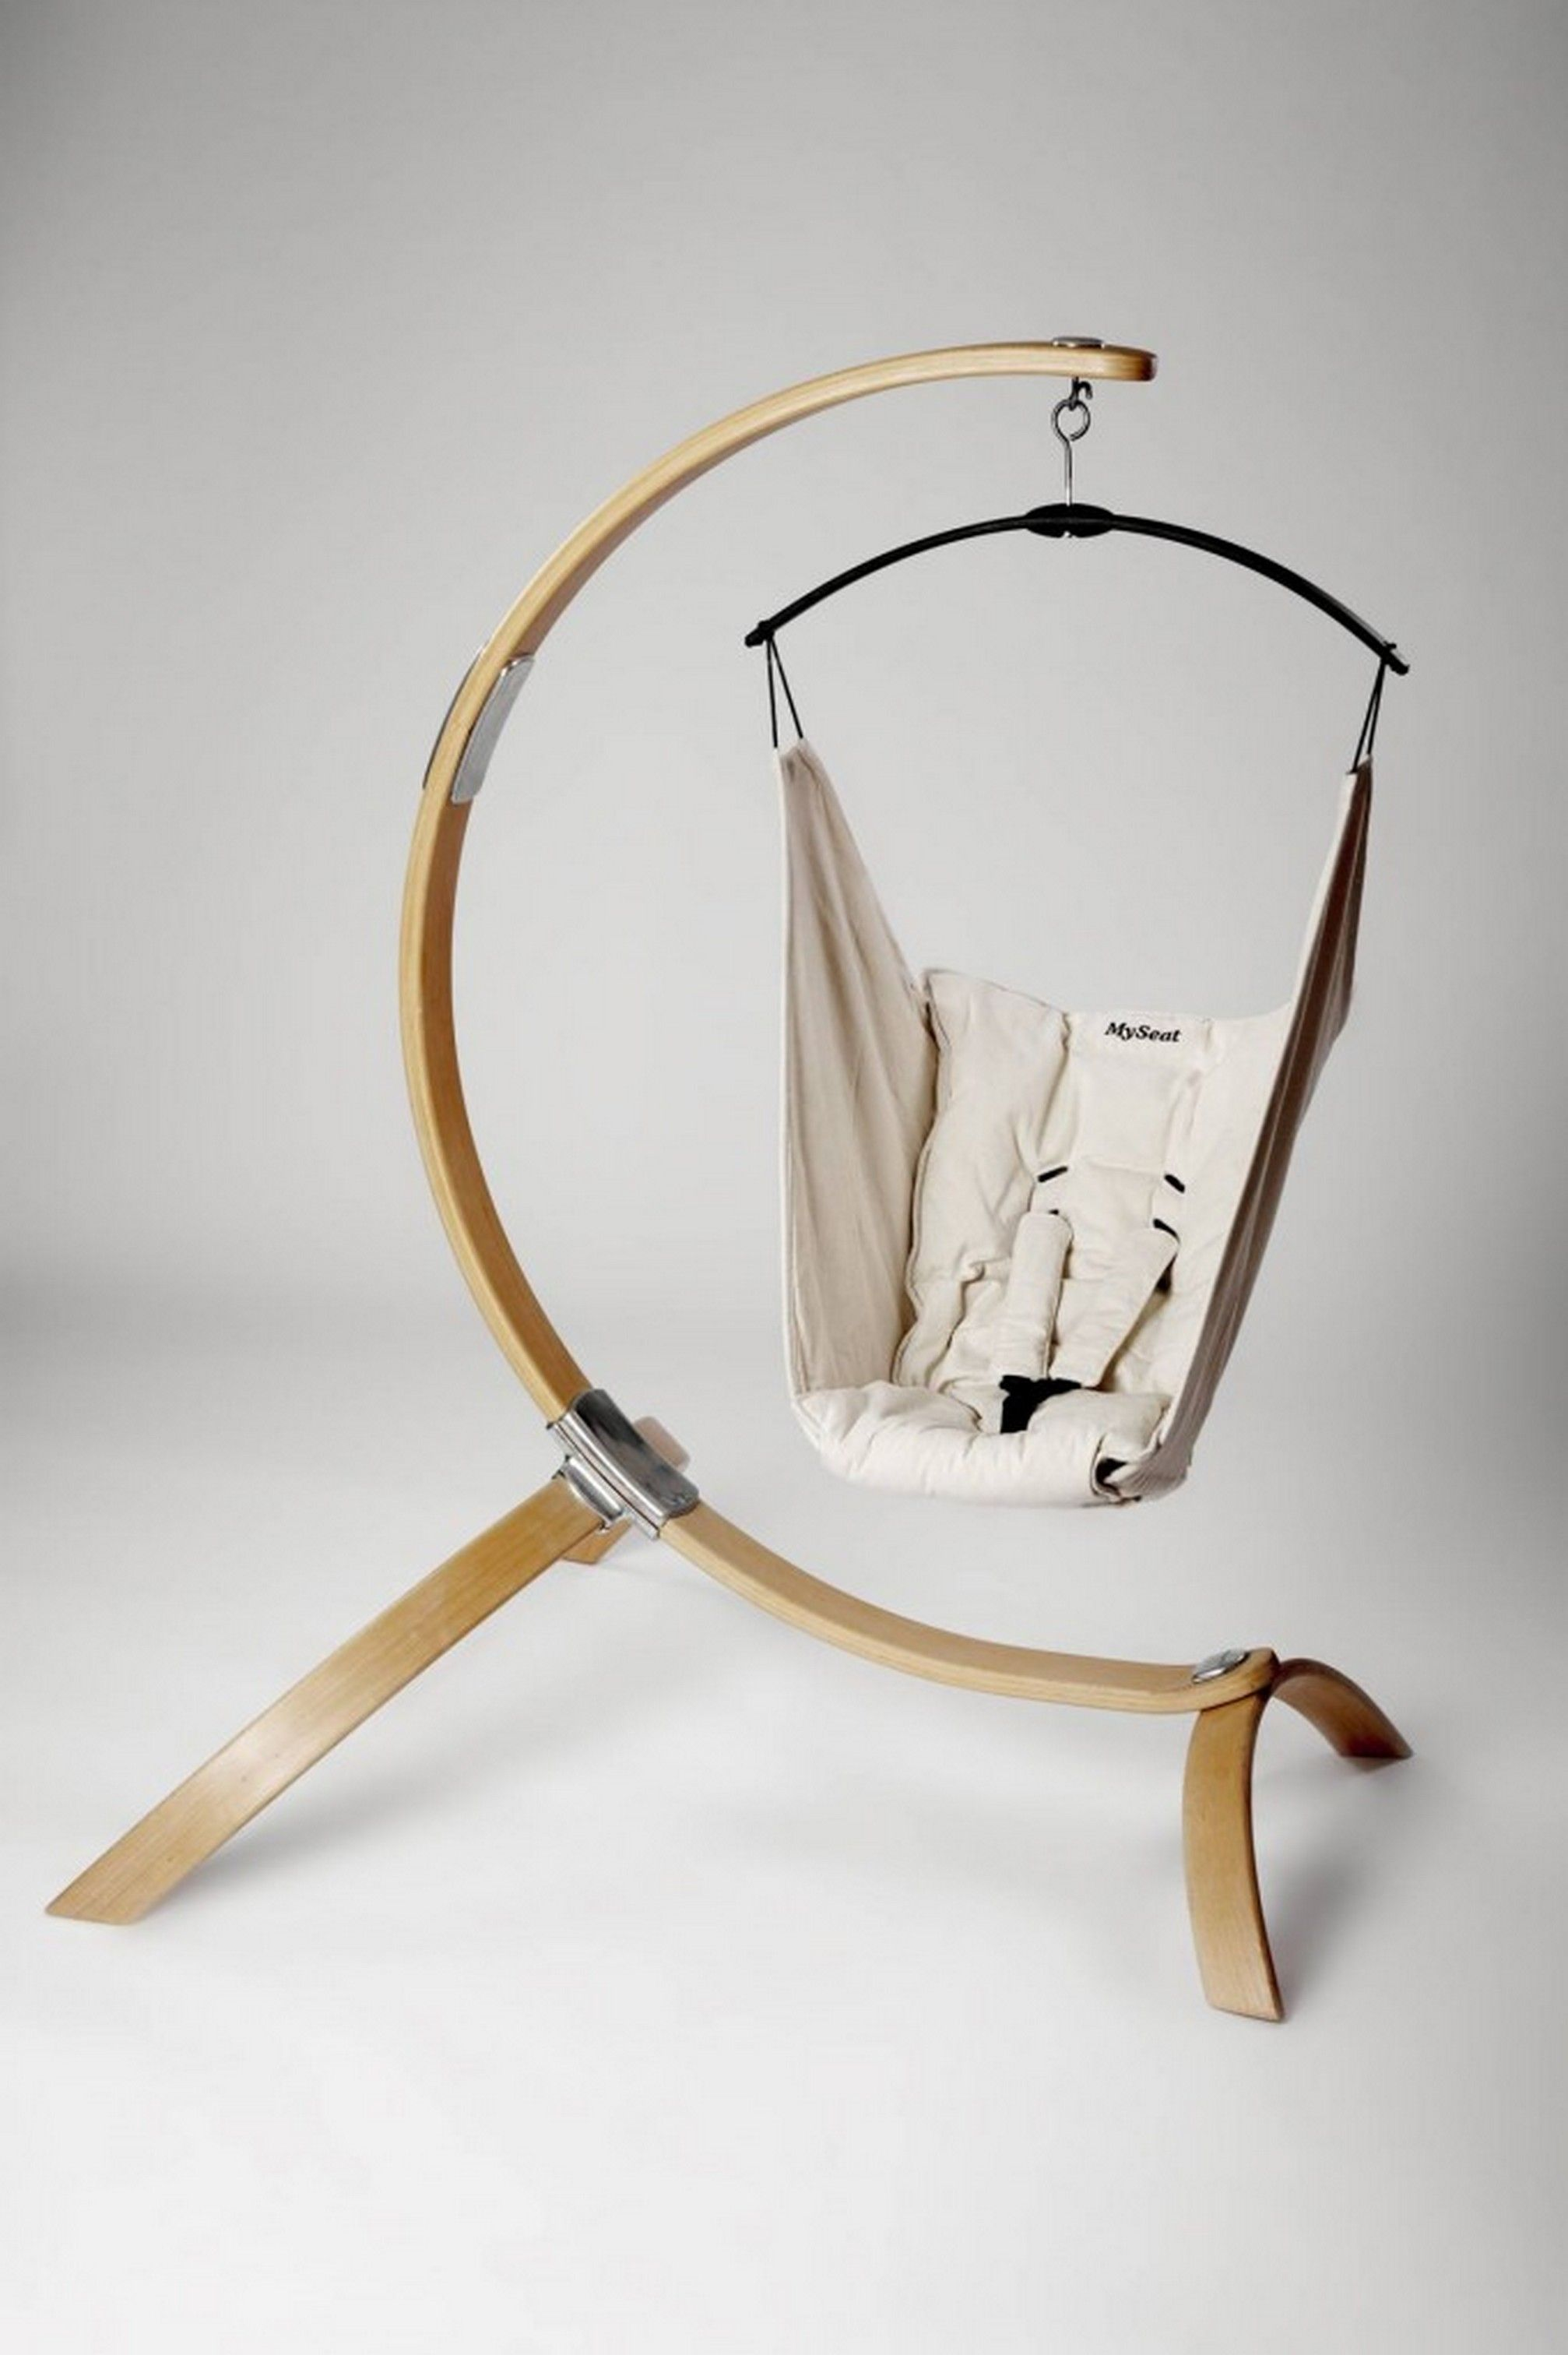 Le Meilleur Furniture Wooden Hammock Chair Stand For Baby The Wide Ce Mois Ci